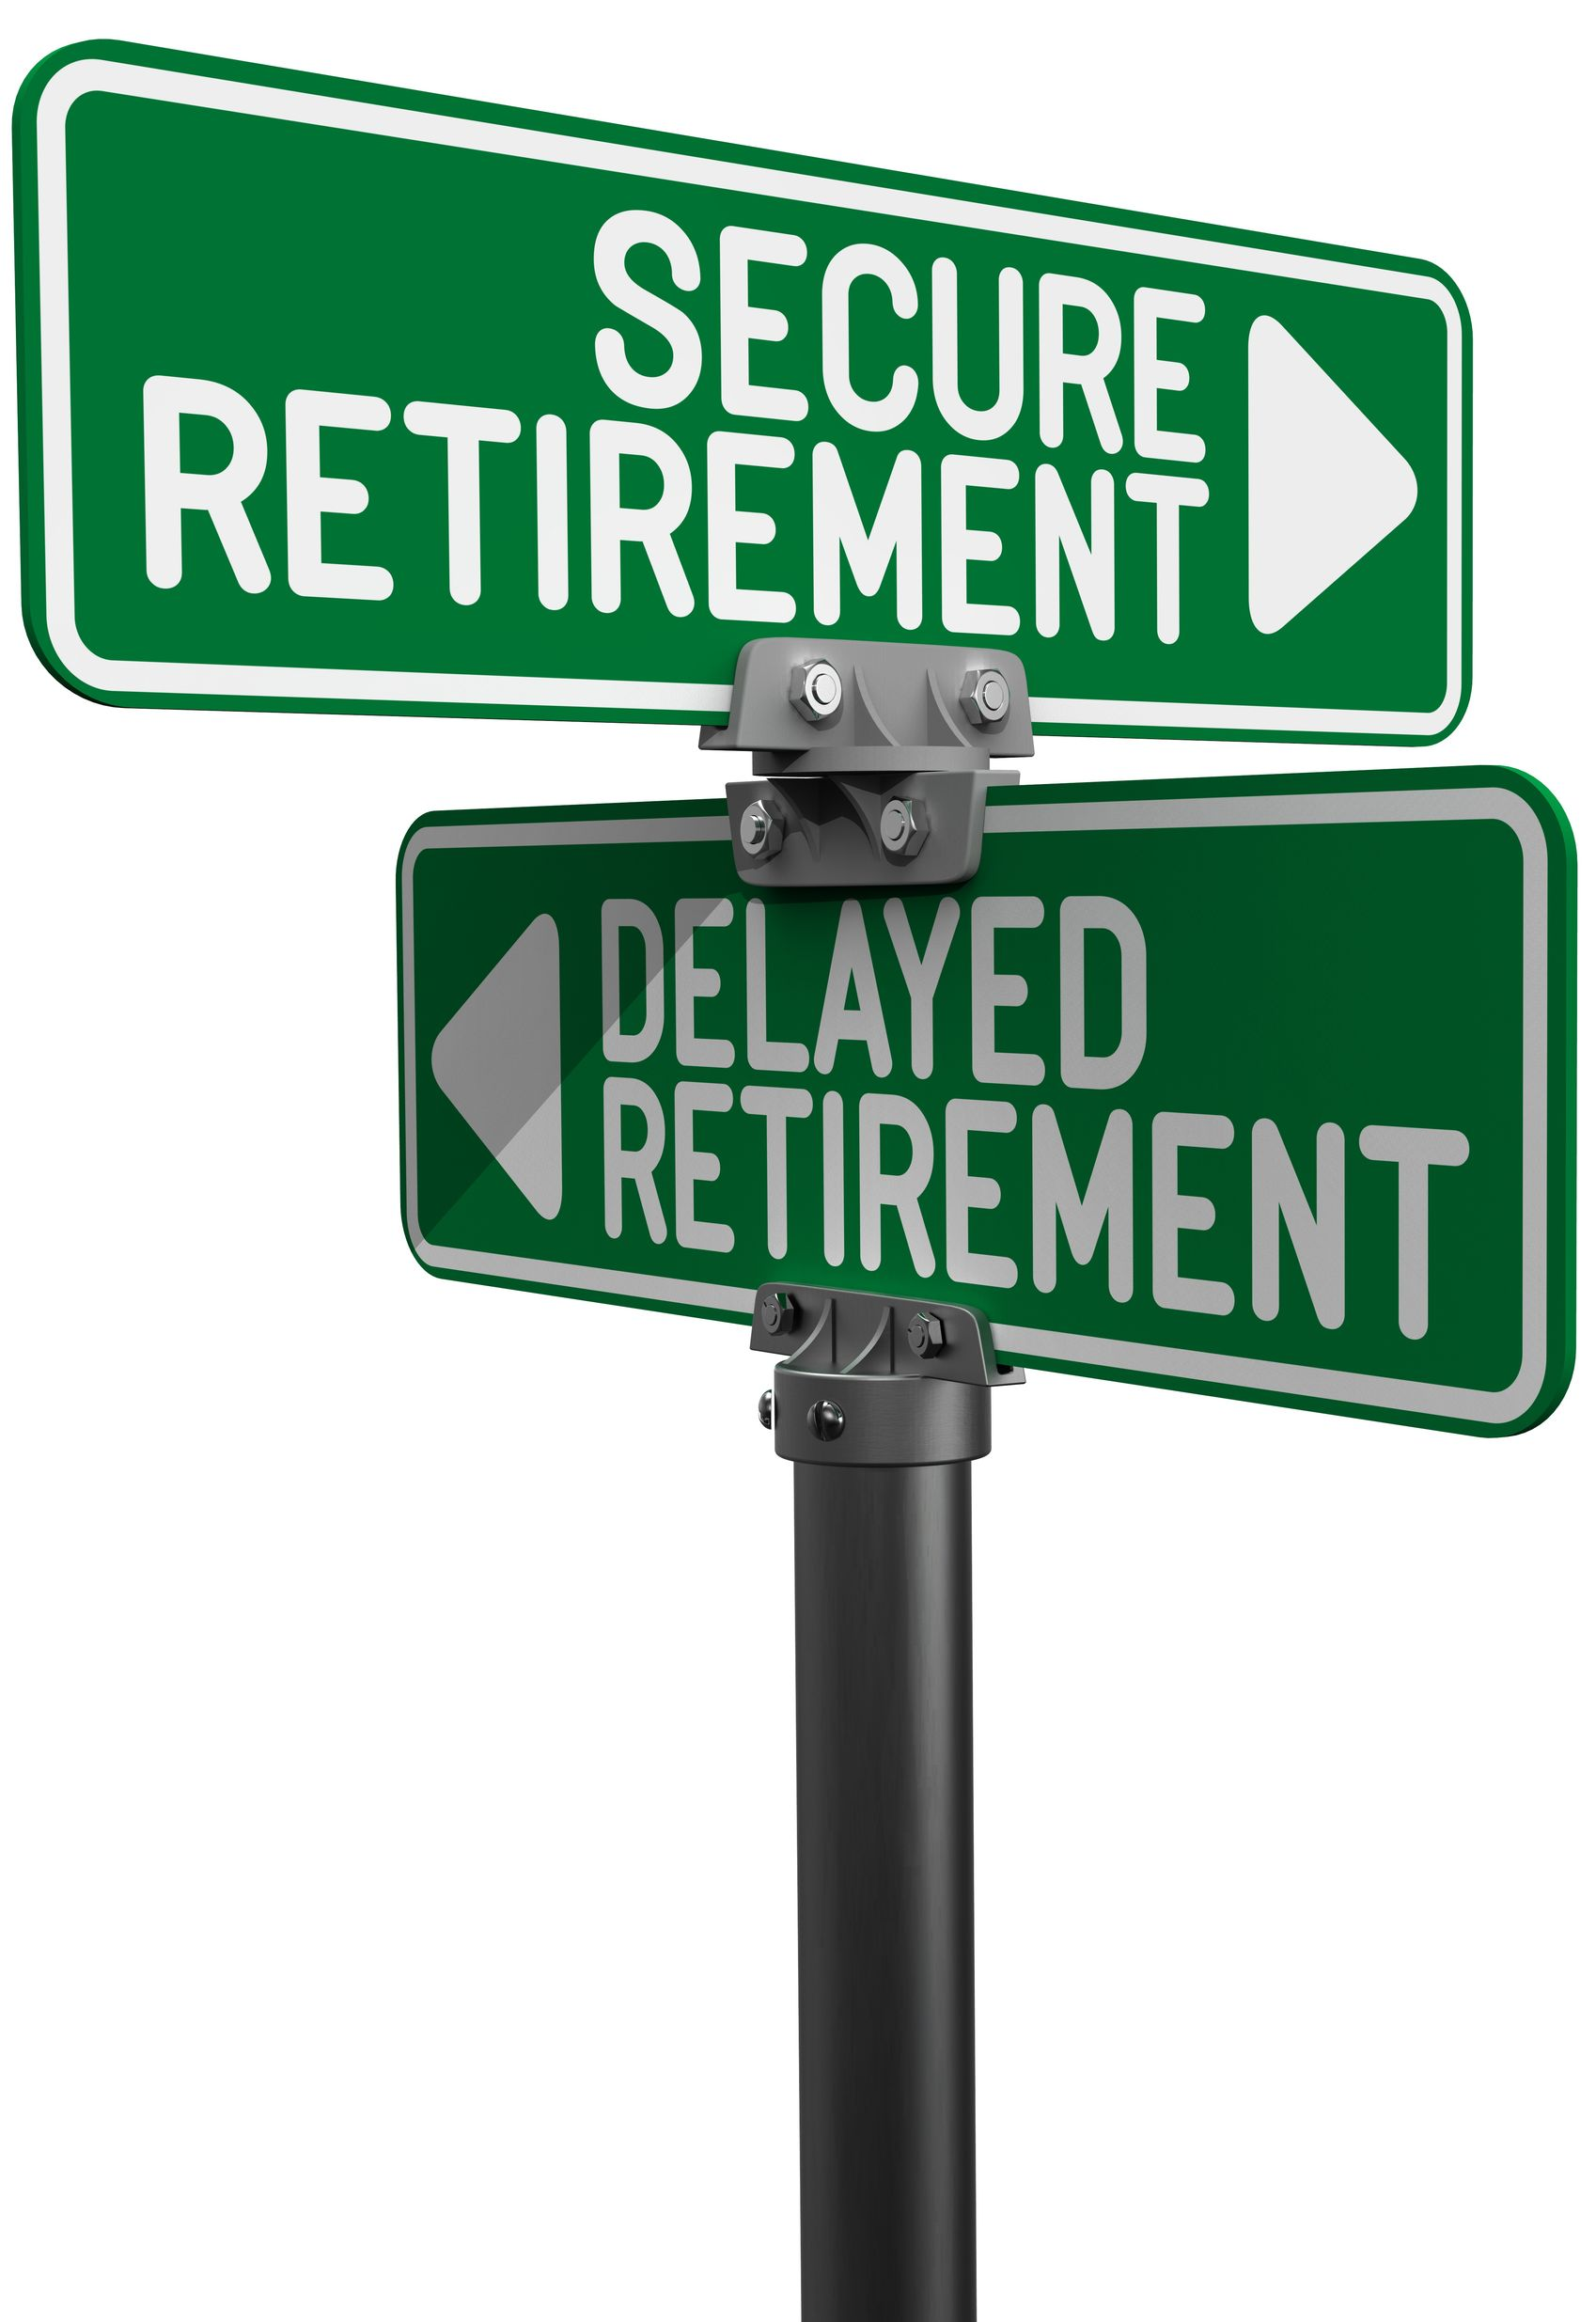 5 Costly Retirement Planning Mistakes